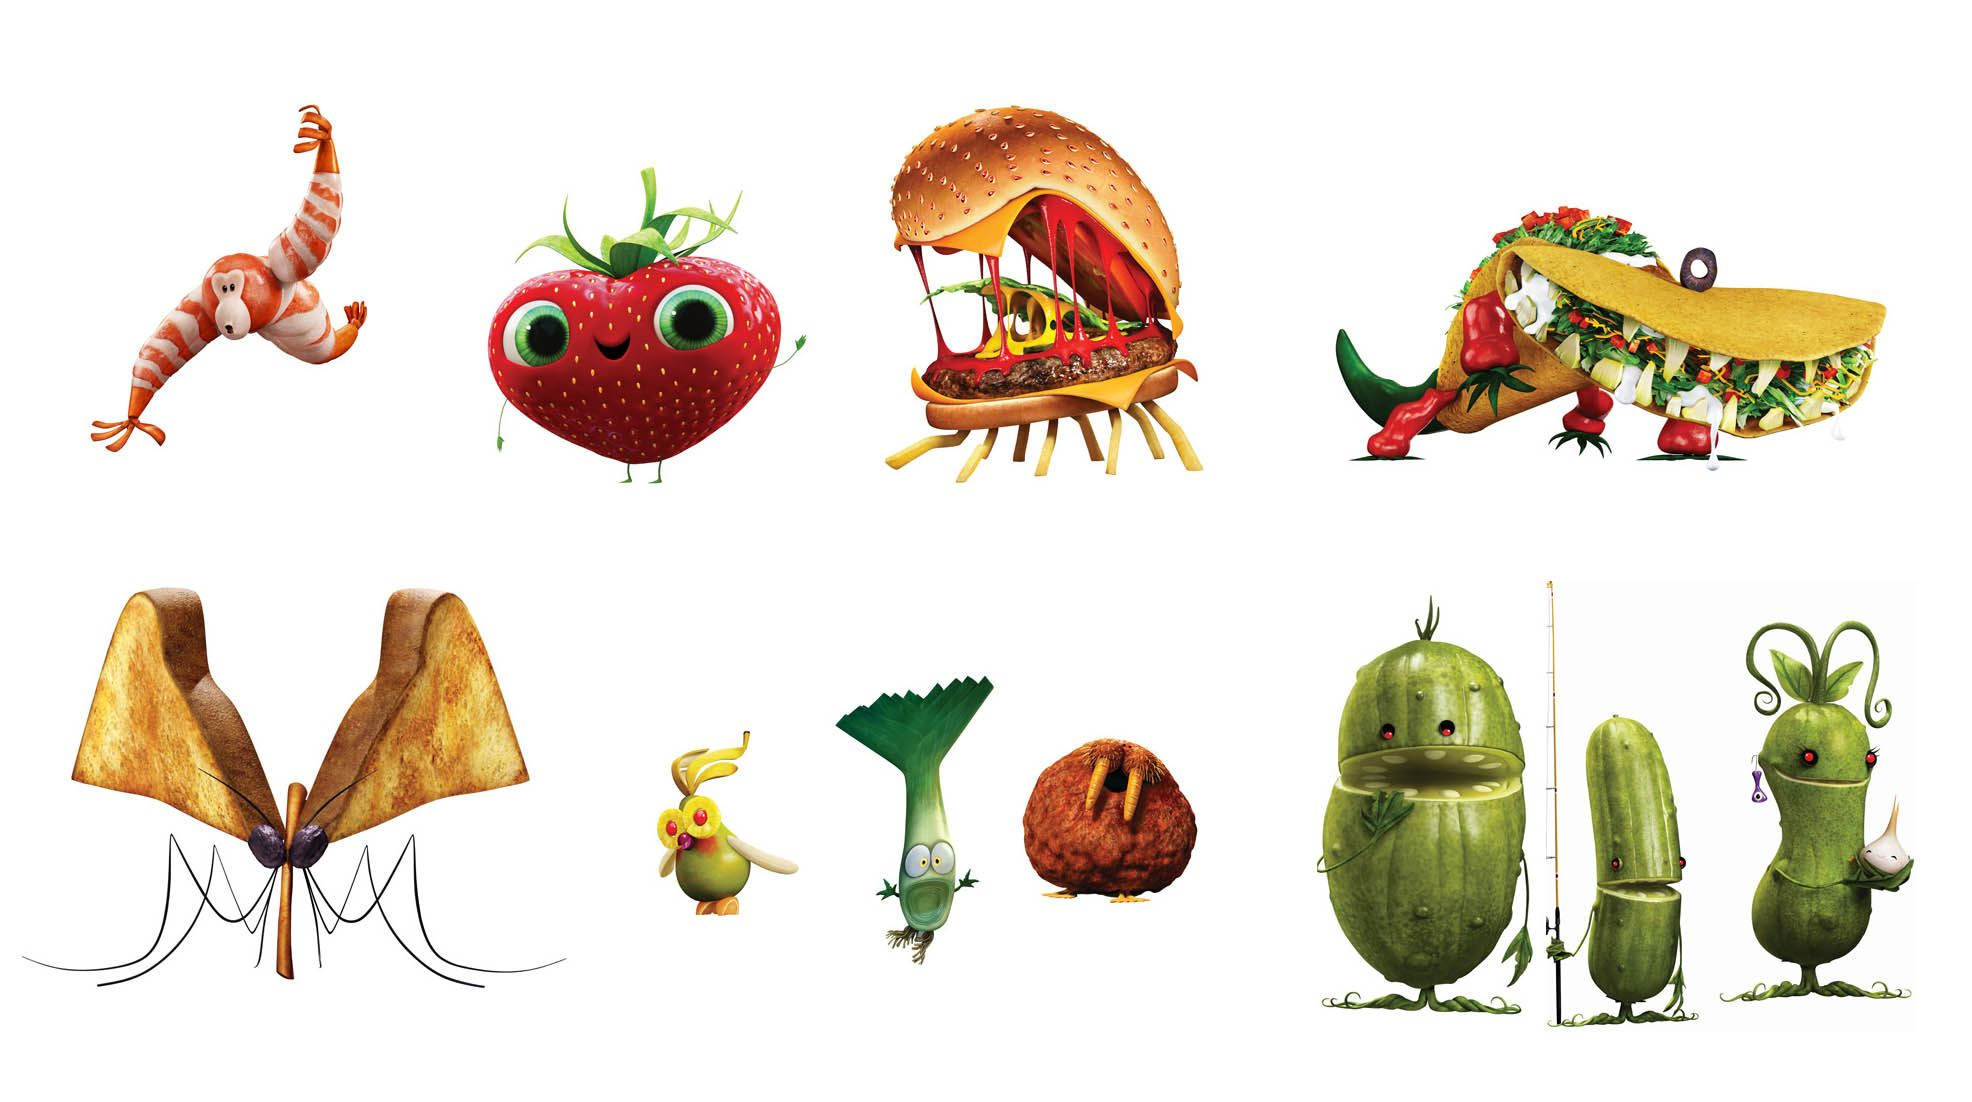 Cloudy 2 Isn T Quite As Spicy A Meatball As The Original Character Design Animation Meatballs 2 Character Design